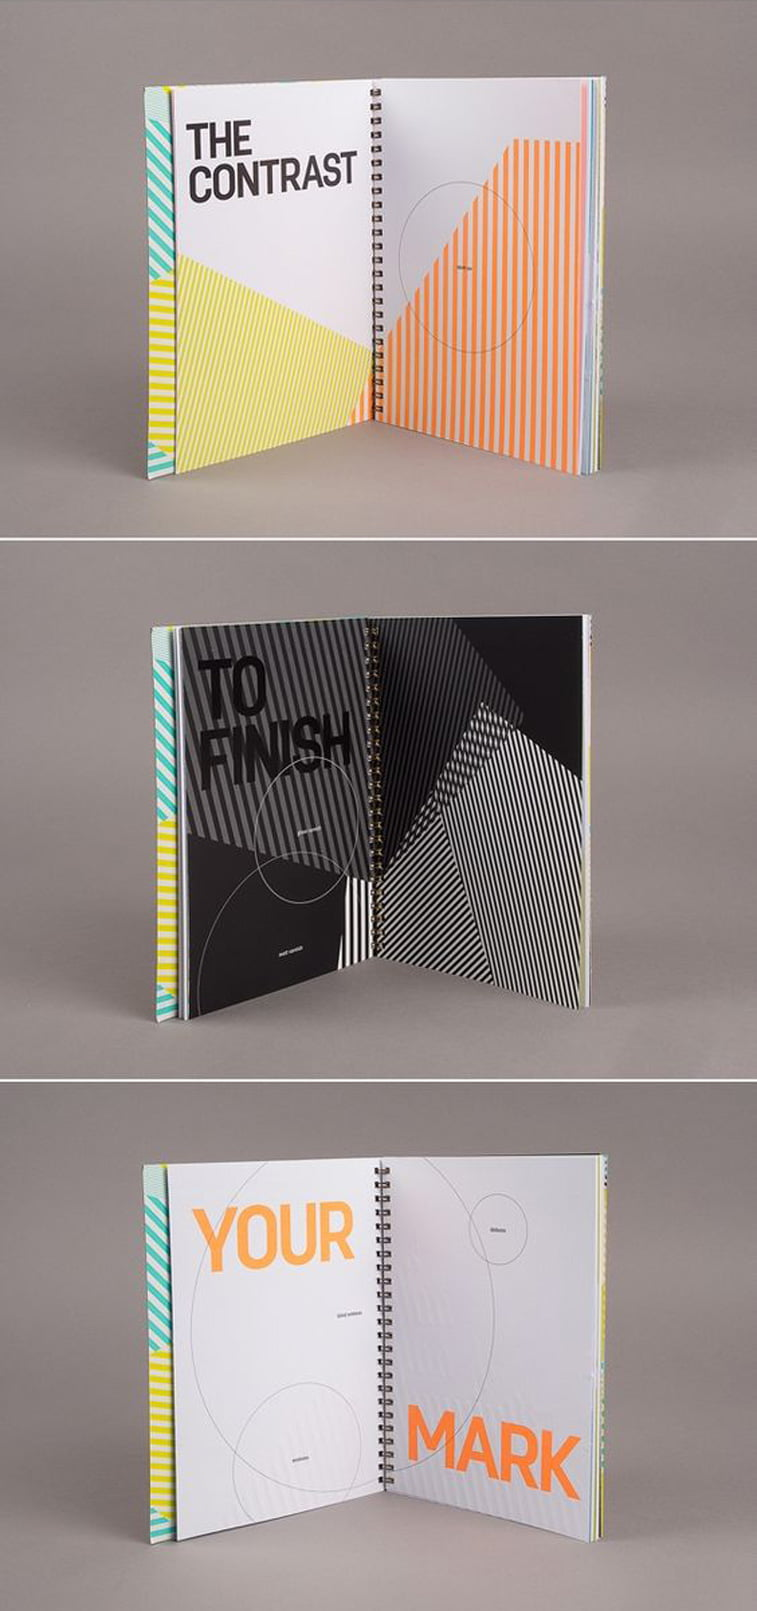 Oxygen brand identity Source: Pinterest